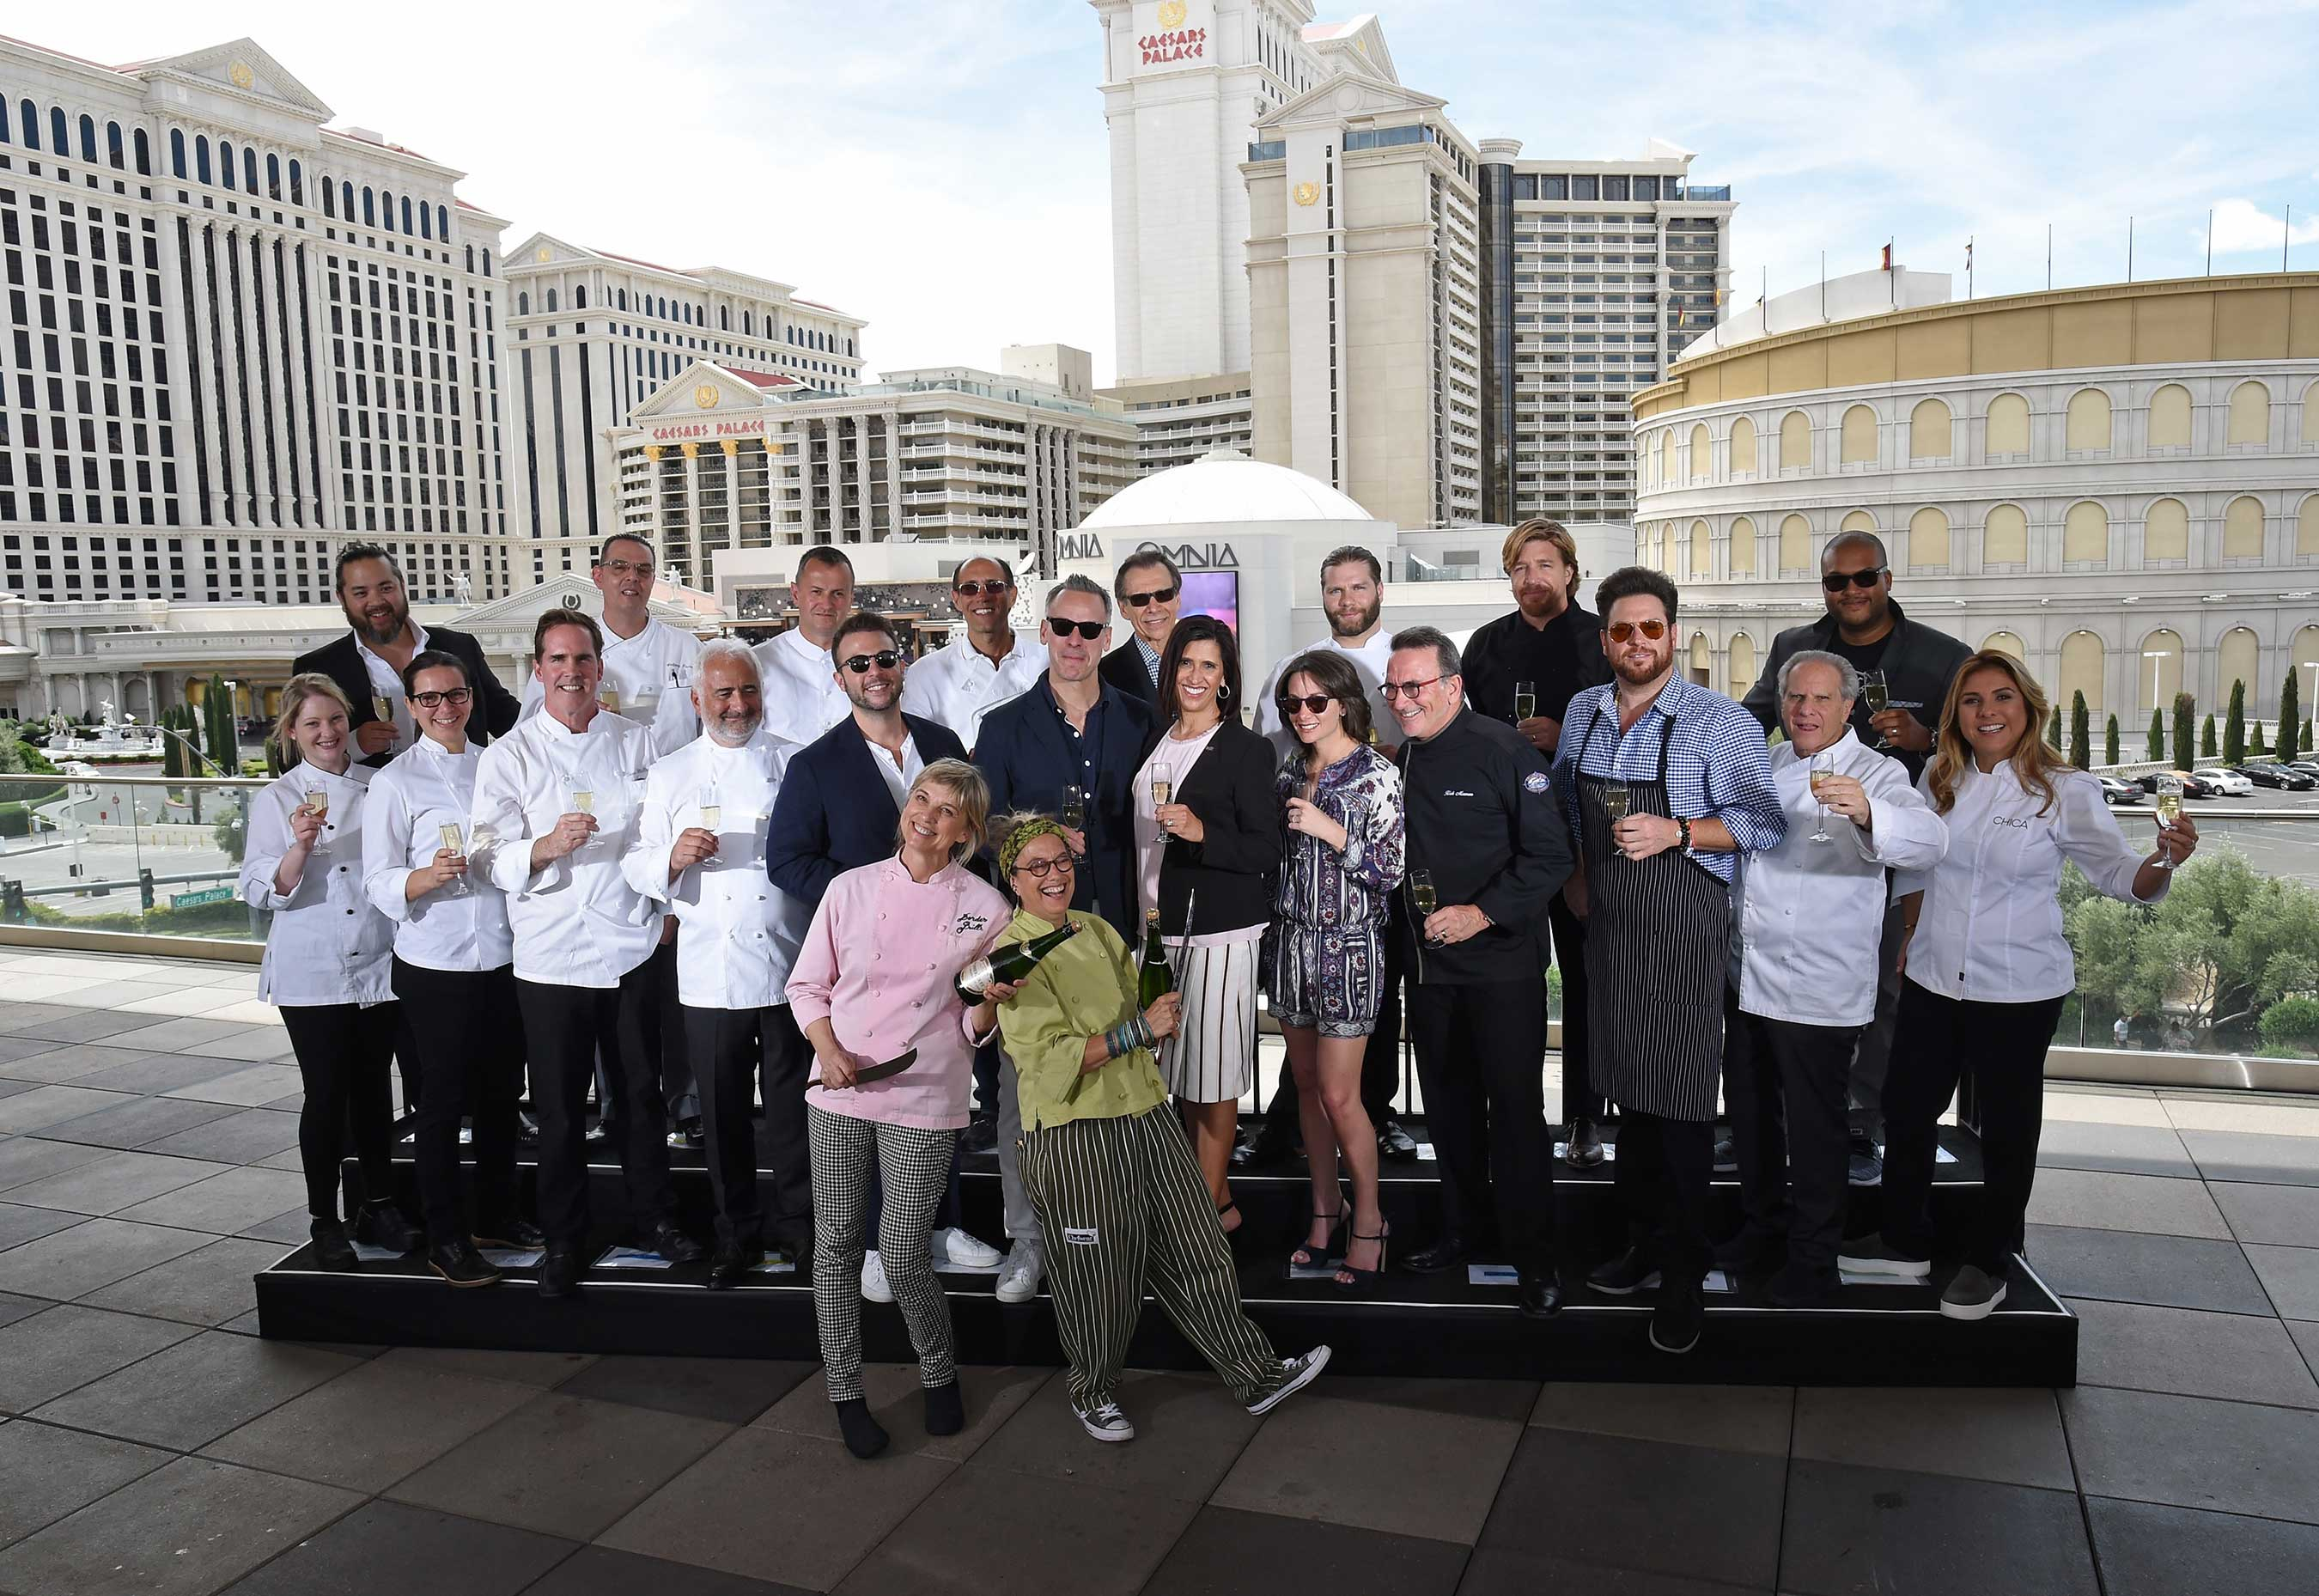 More than 15 iconic chefs gathered for the 11th annual Vegas Uncork'd by Bon Appétit Saber Off at The LINQ Hotel & Casino in Las Vegas (credit Ethan Miller, Getty Images)